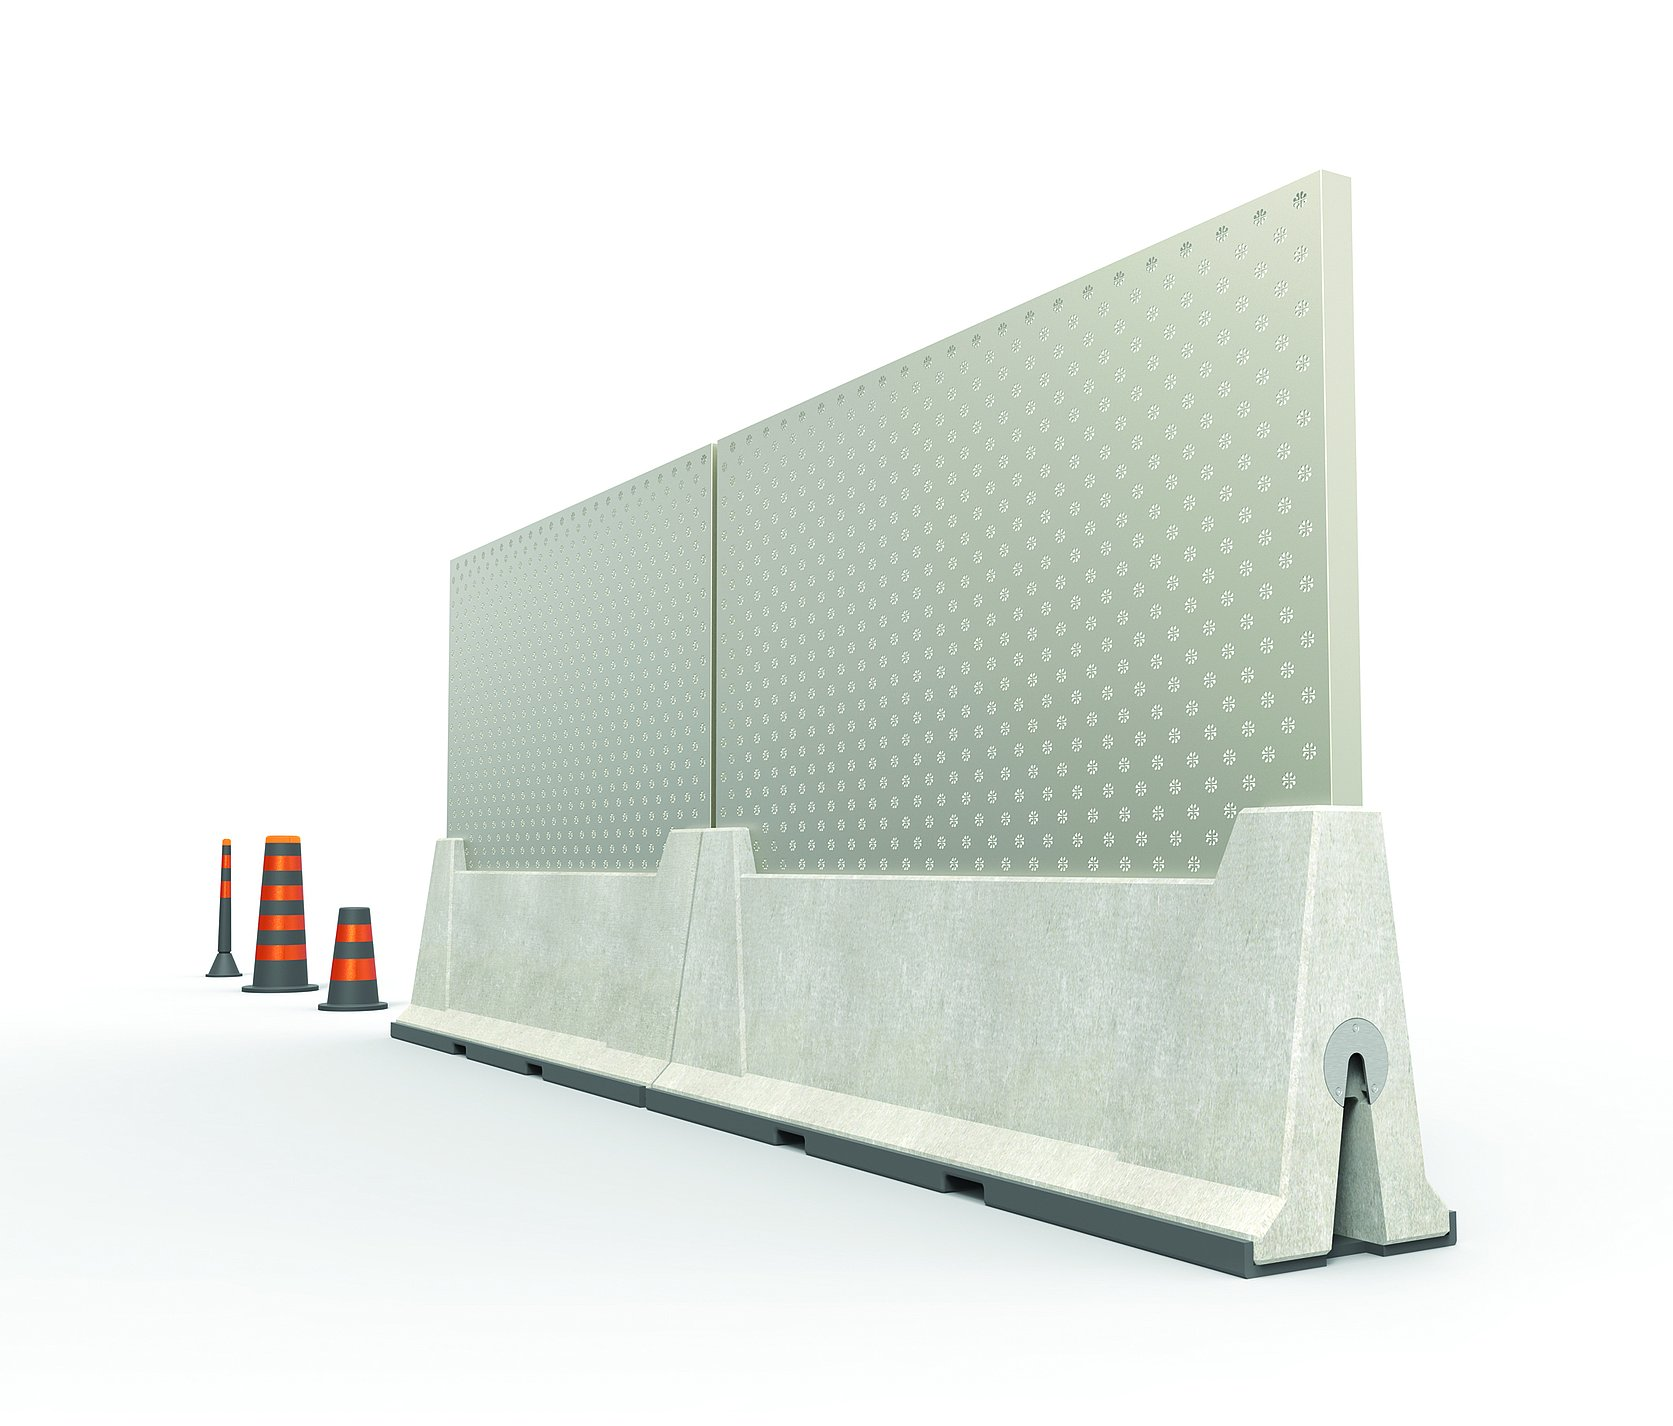 DIVID _ From construction barriers to street furniture | Red Dot Design Award